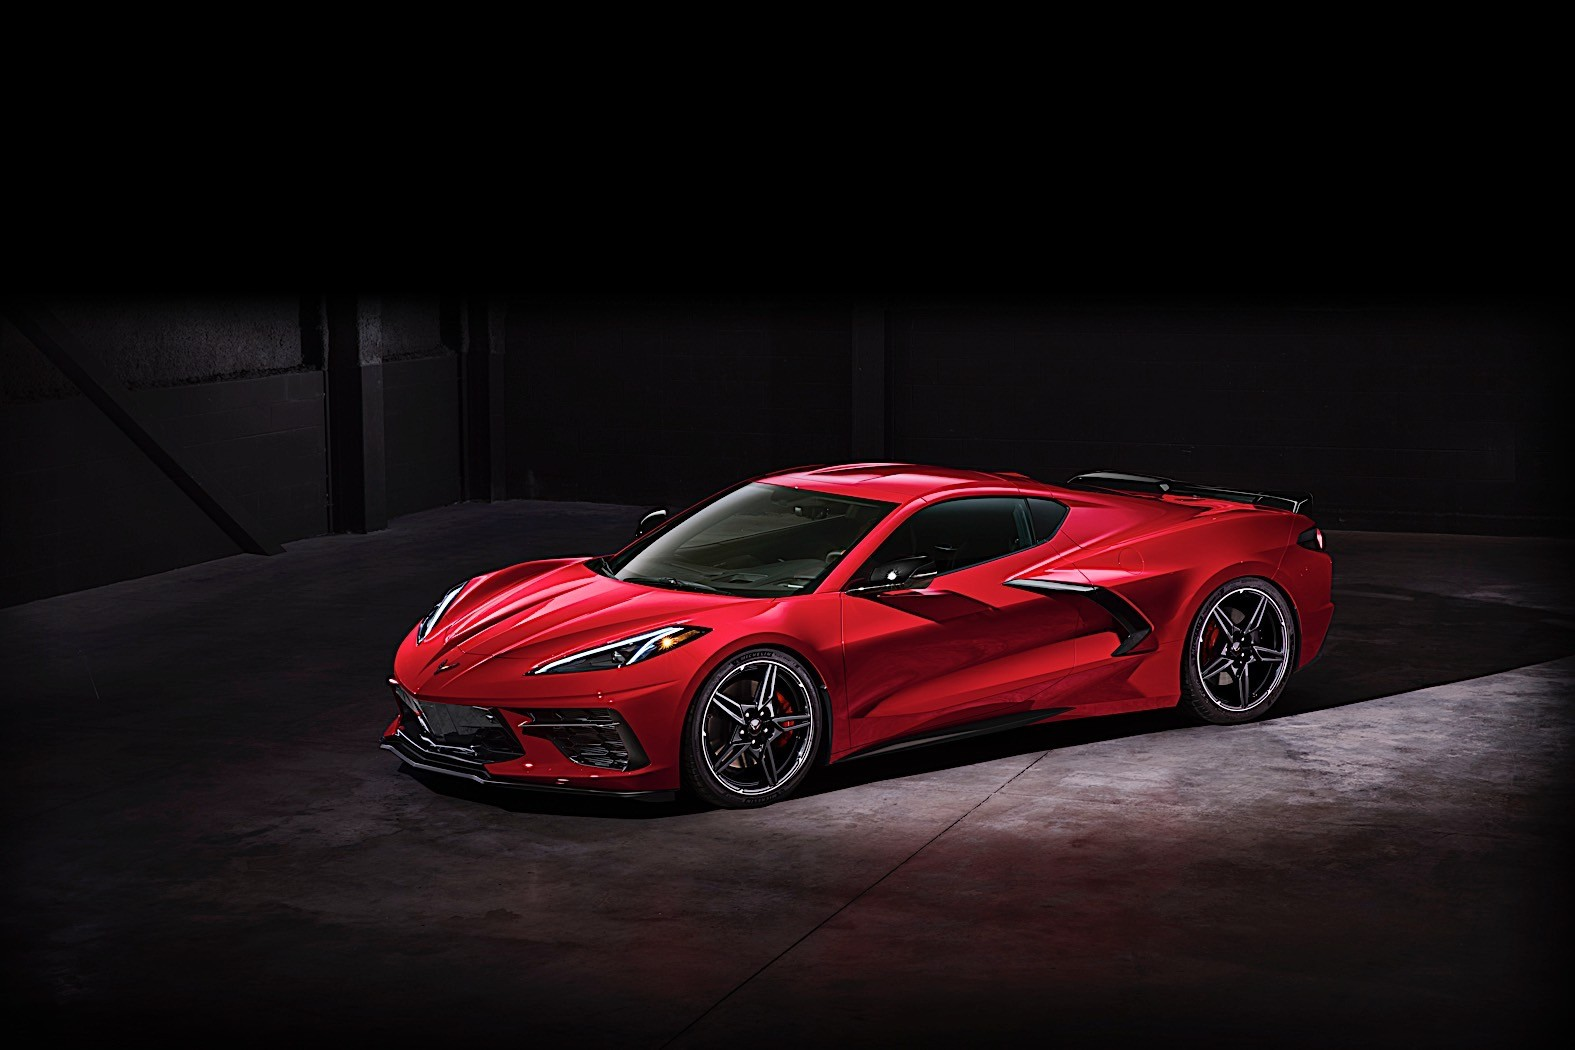 Chevrolet Corvette hard-top convertible revealed